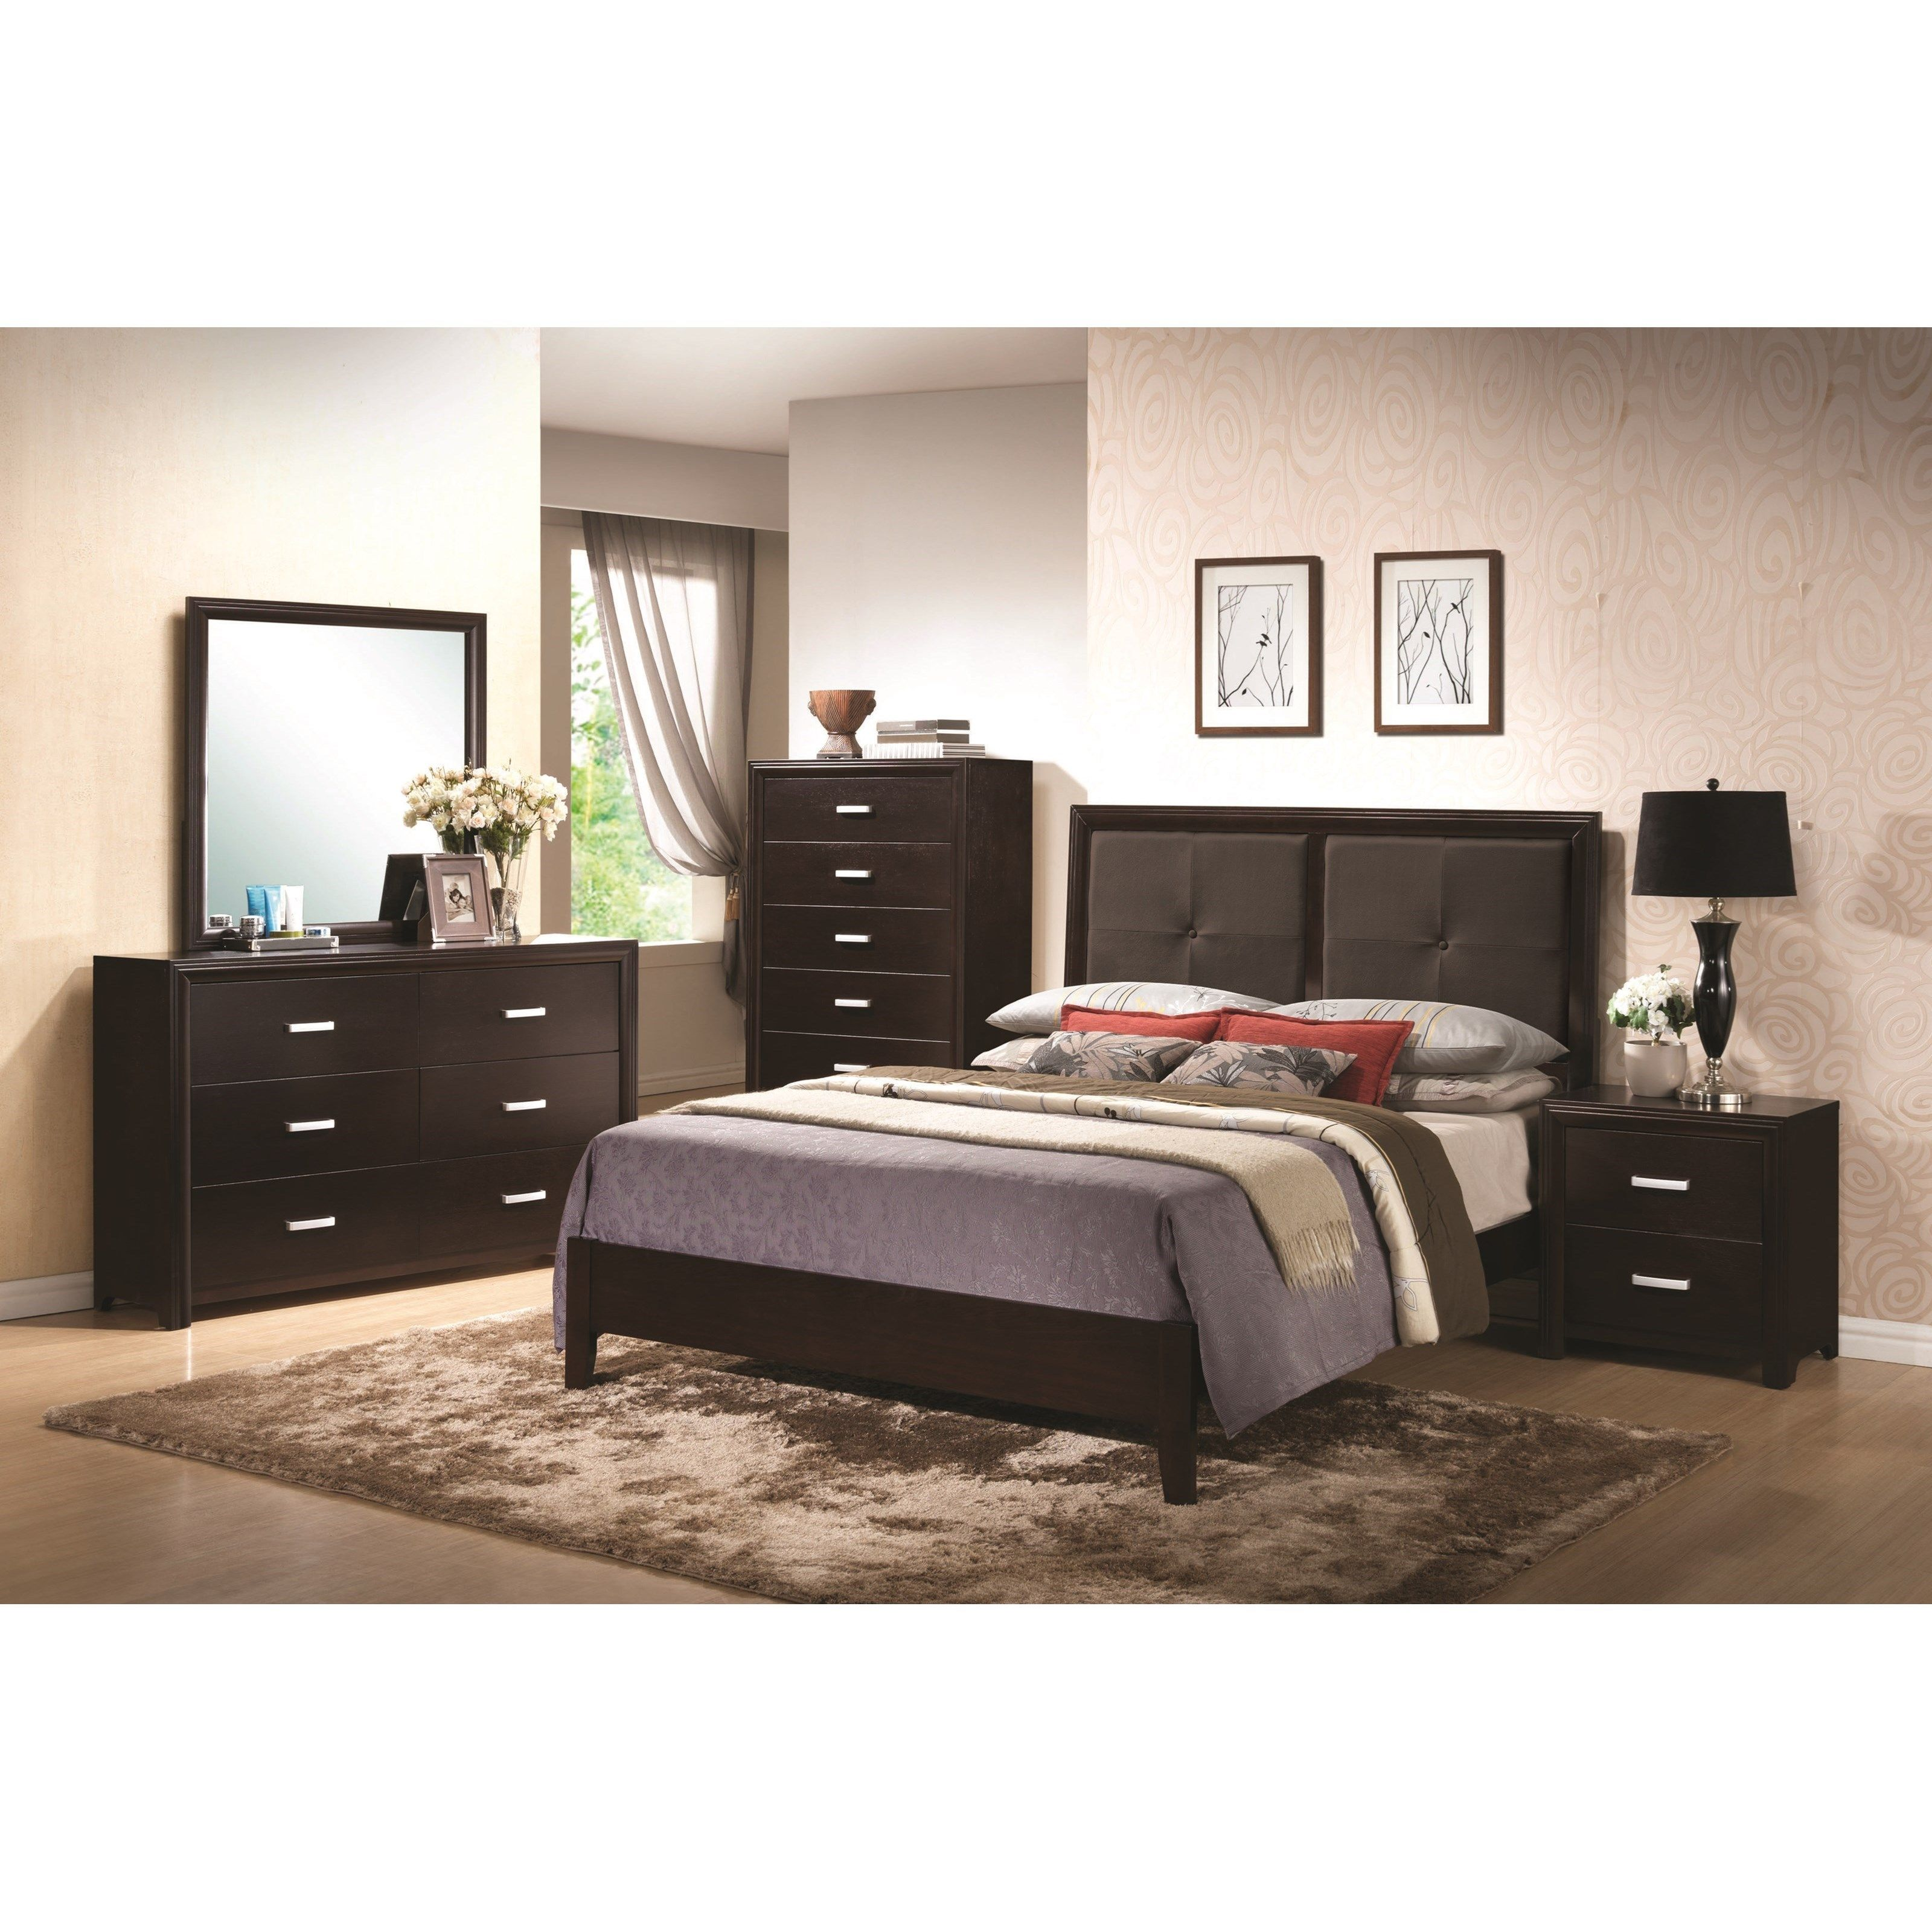 Andreas King Bedroom Group by Coaster bedroom Pinterest